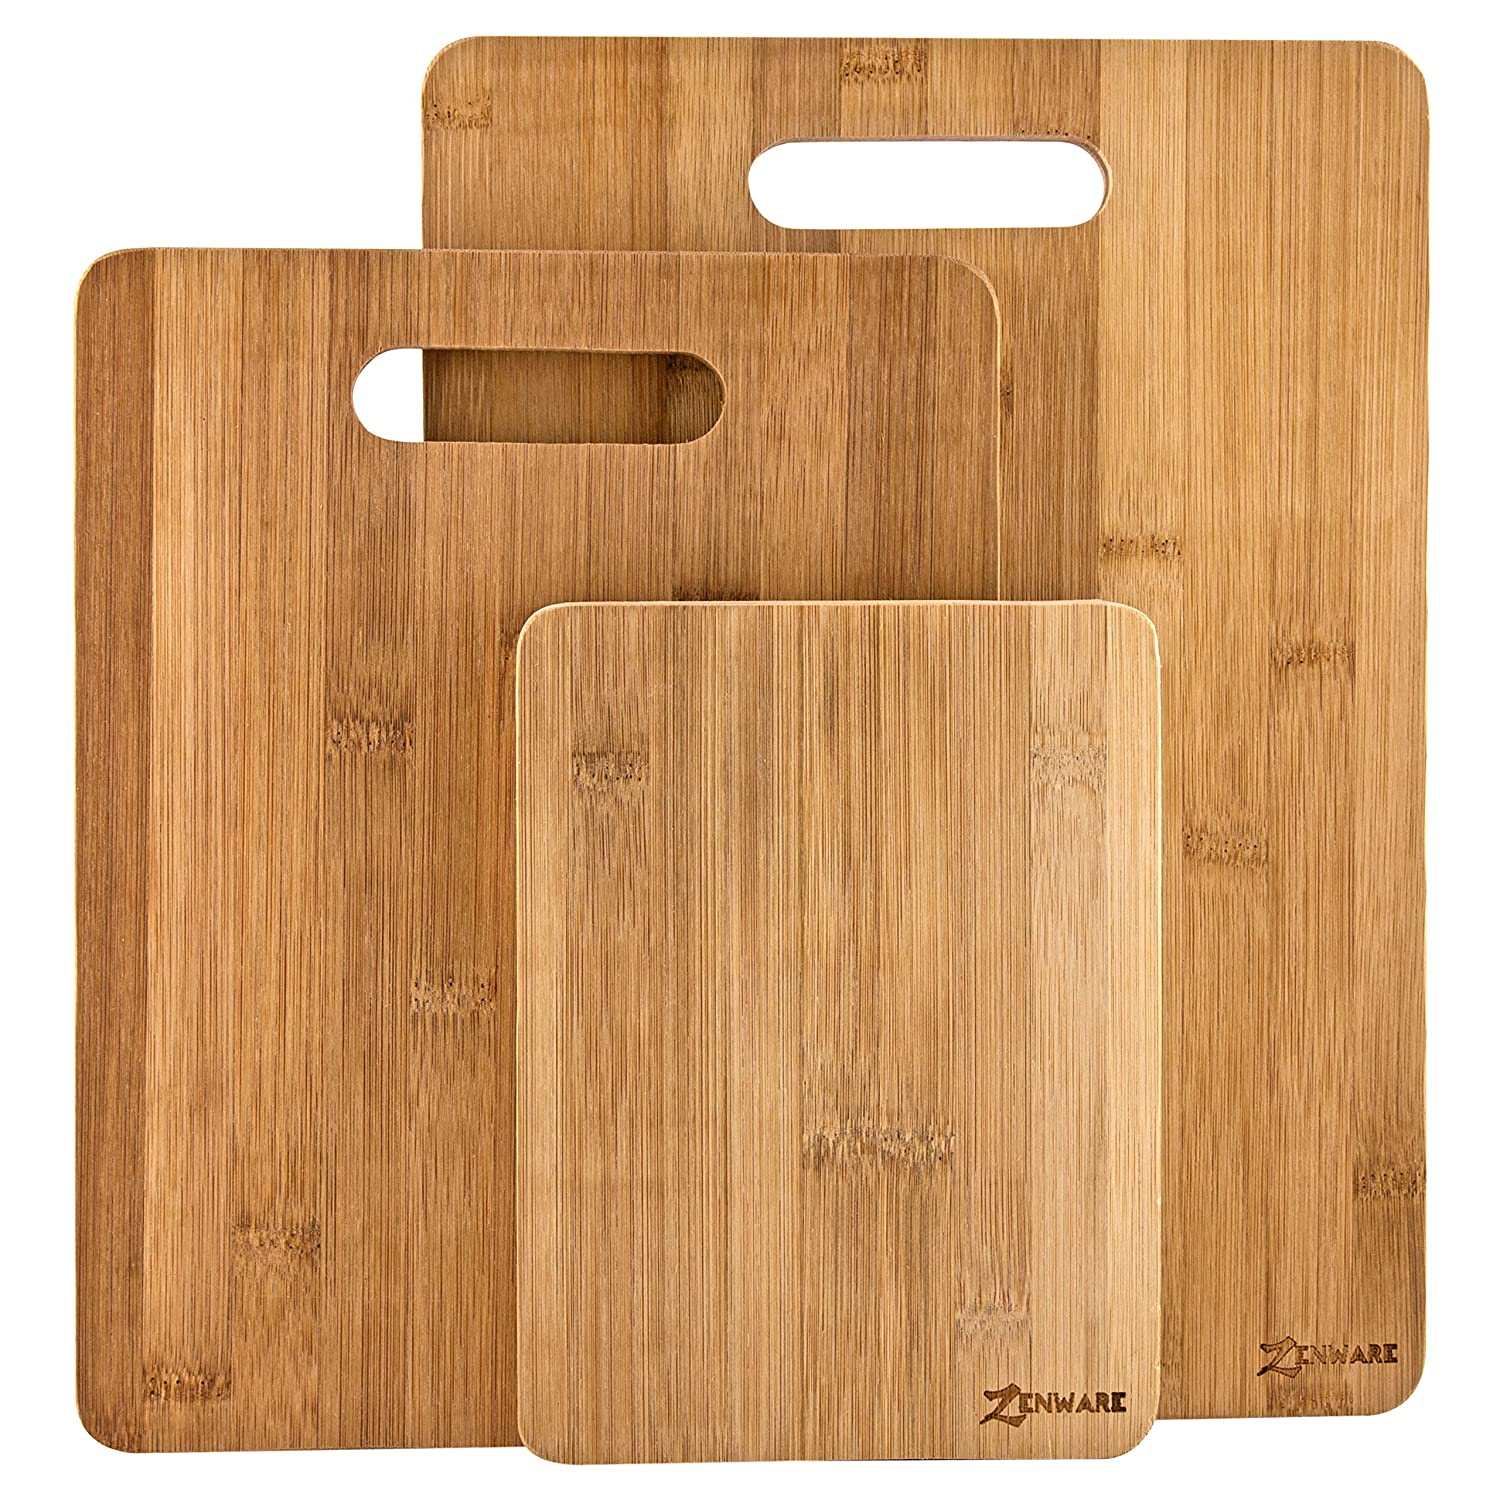 Zenware 3 Piece Triple-Ply Warp Resistant All Natural Bamboo Cutting Board Set – Small SYNCHKG078404